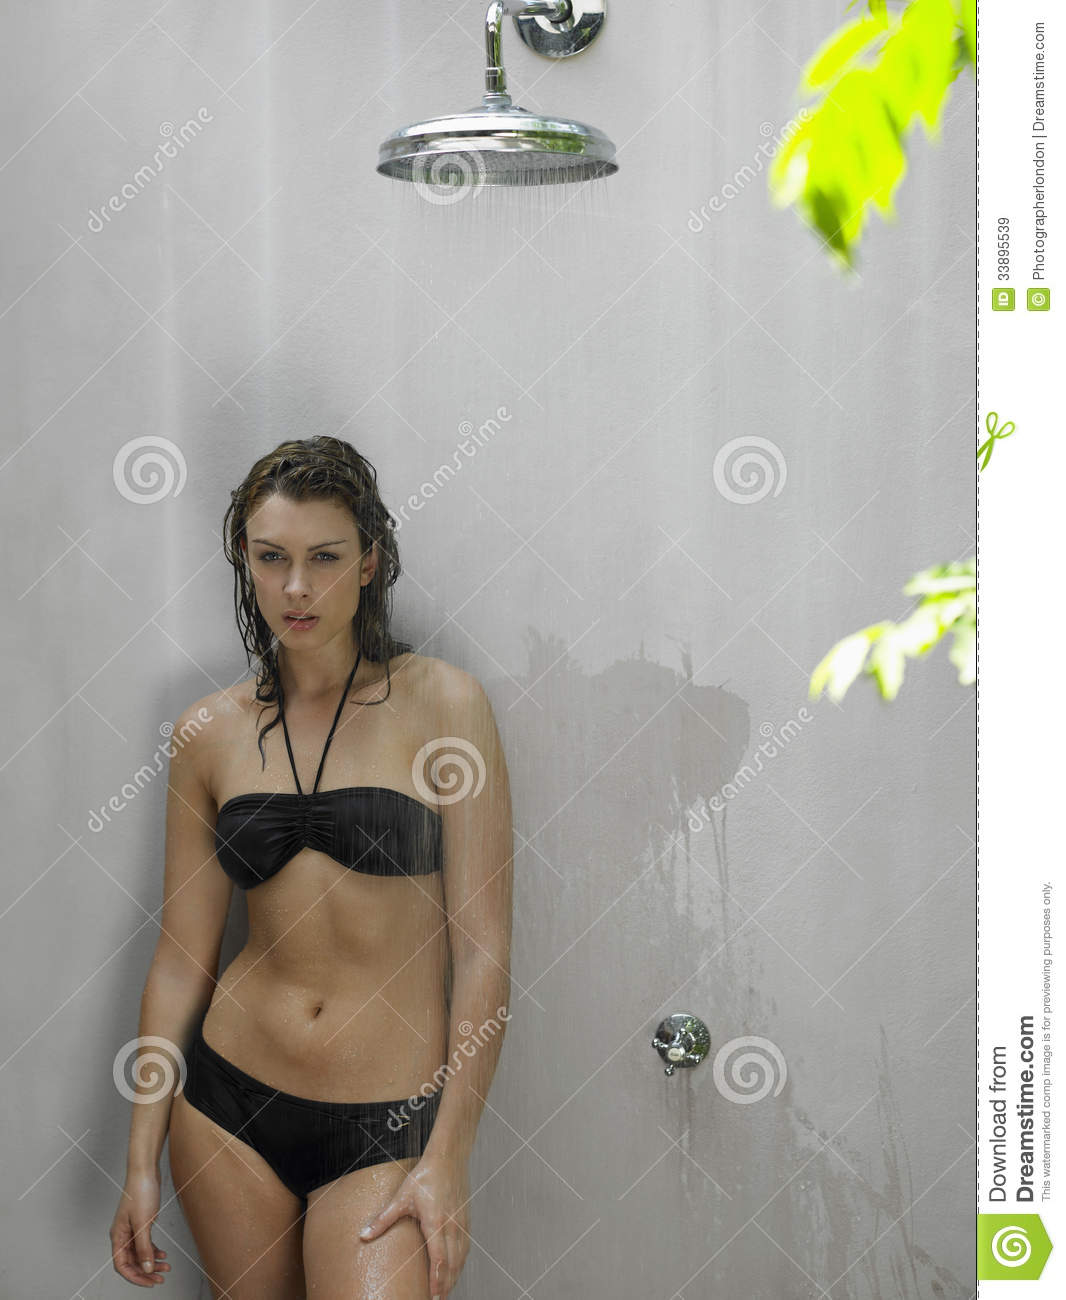 Young Woman In Bikini Showering Royalty Free Stock Images - Image ...